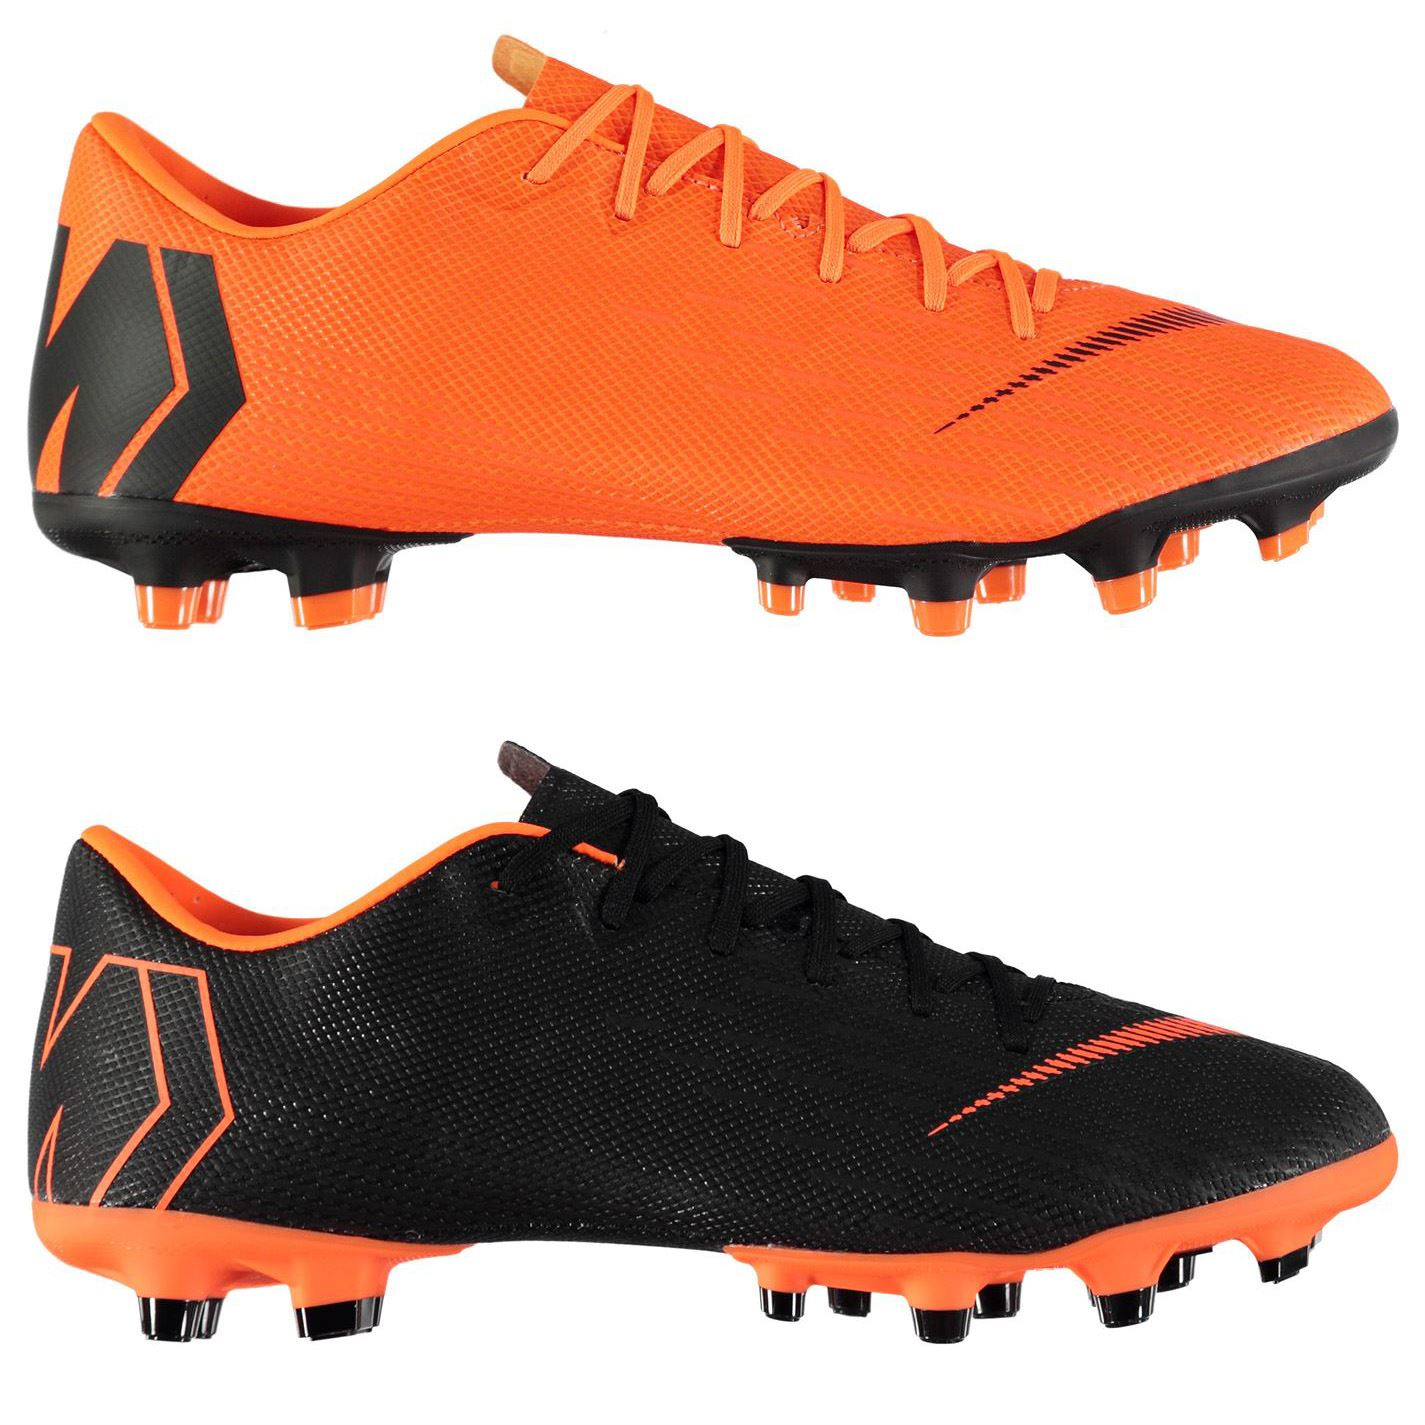 Details about Nike Mercurial Vapor Academy Firm Ground Football Boots Mens  Soccer Shoes Cleats 427a809521018